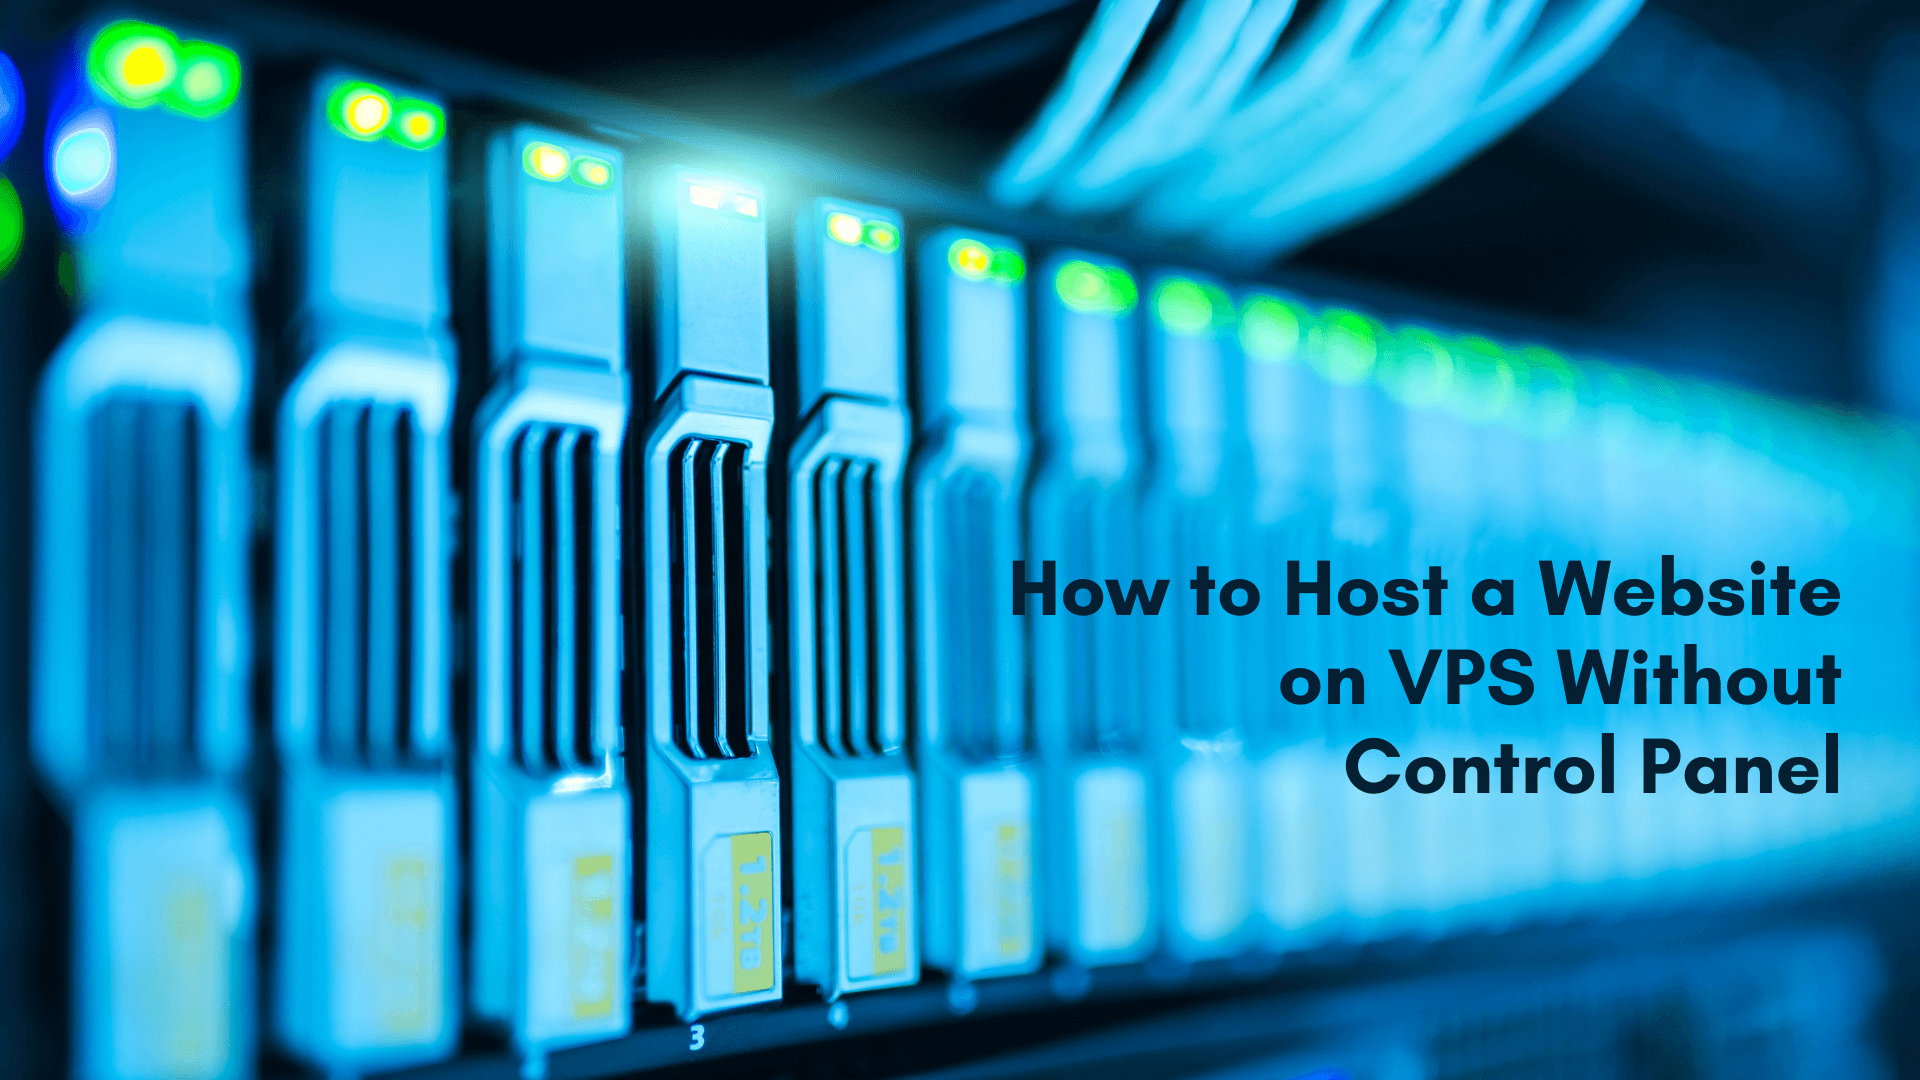 How-to-Host-a-Website-on-VPS-Without-Control-Panel-1